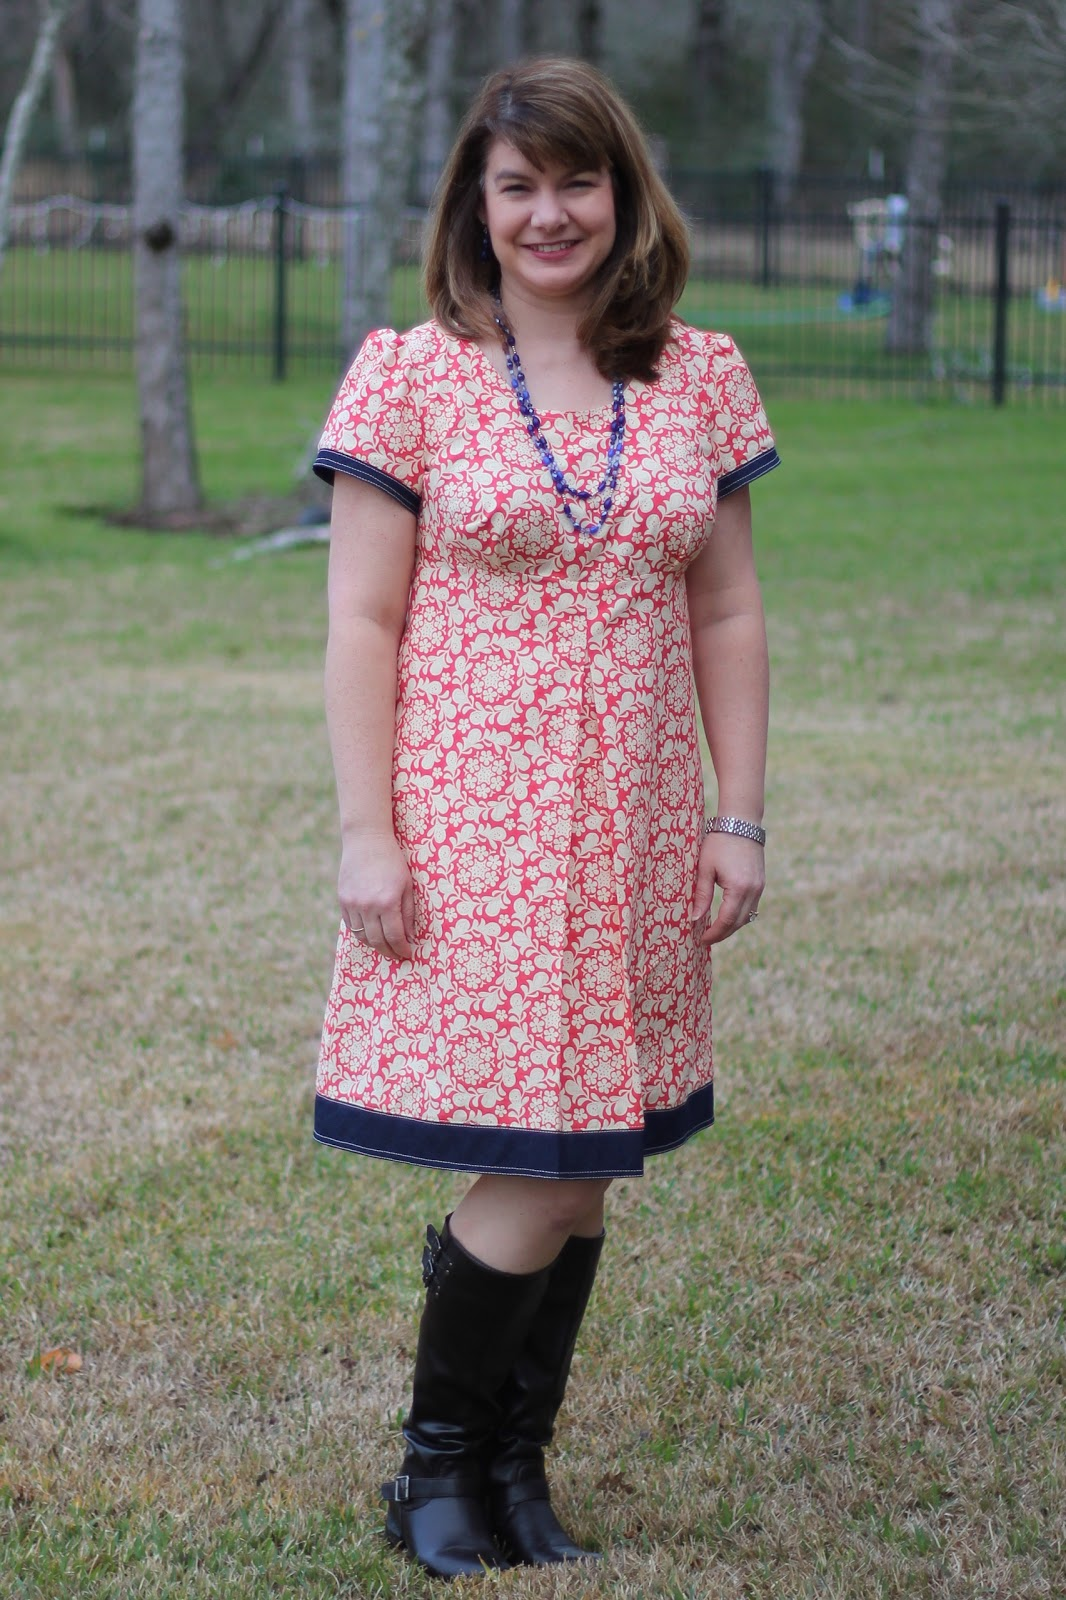 Saint Nolt Sews: THE Bebe Dress, Serendipity Studio